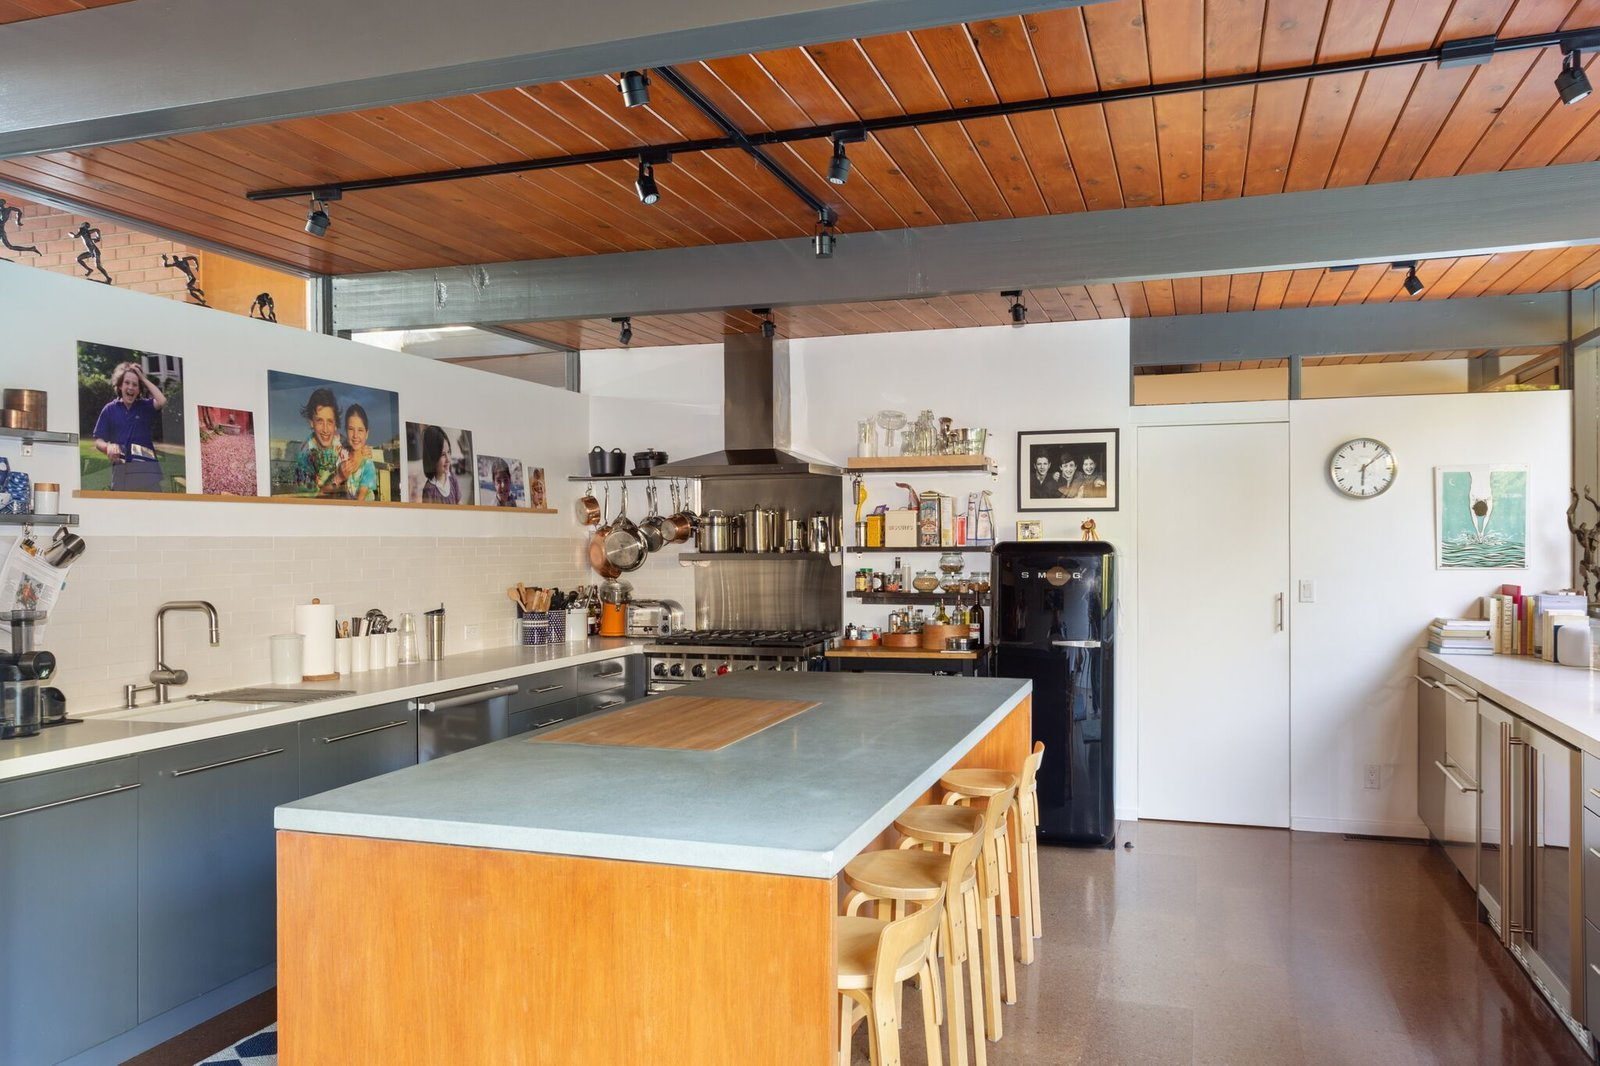 Kitchen, Range Hood, Track, Range, Refrigerator, and Undermount  Best Kitchen Track Undermount Refrigerator Photos from This Post-and-Beam in Pasadena Offers Classic California Living For $2M